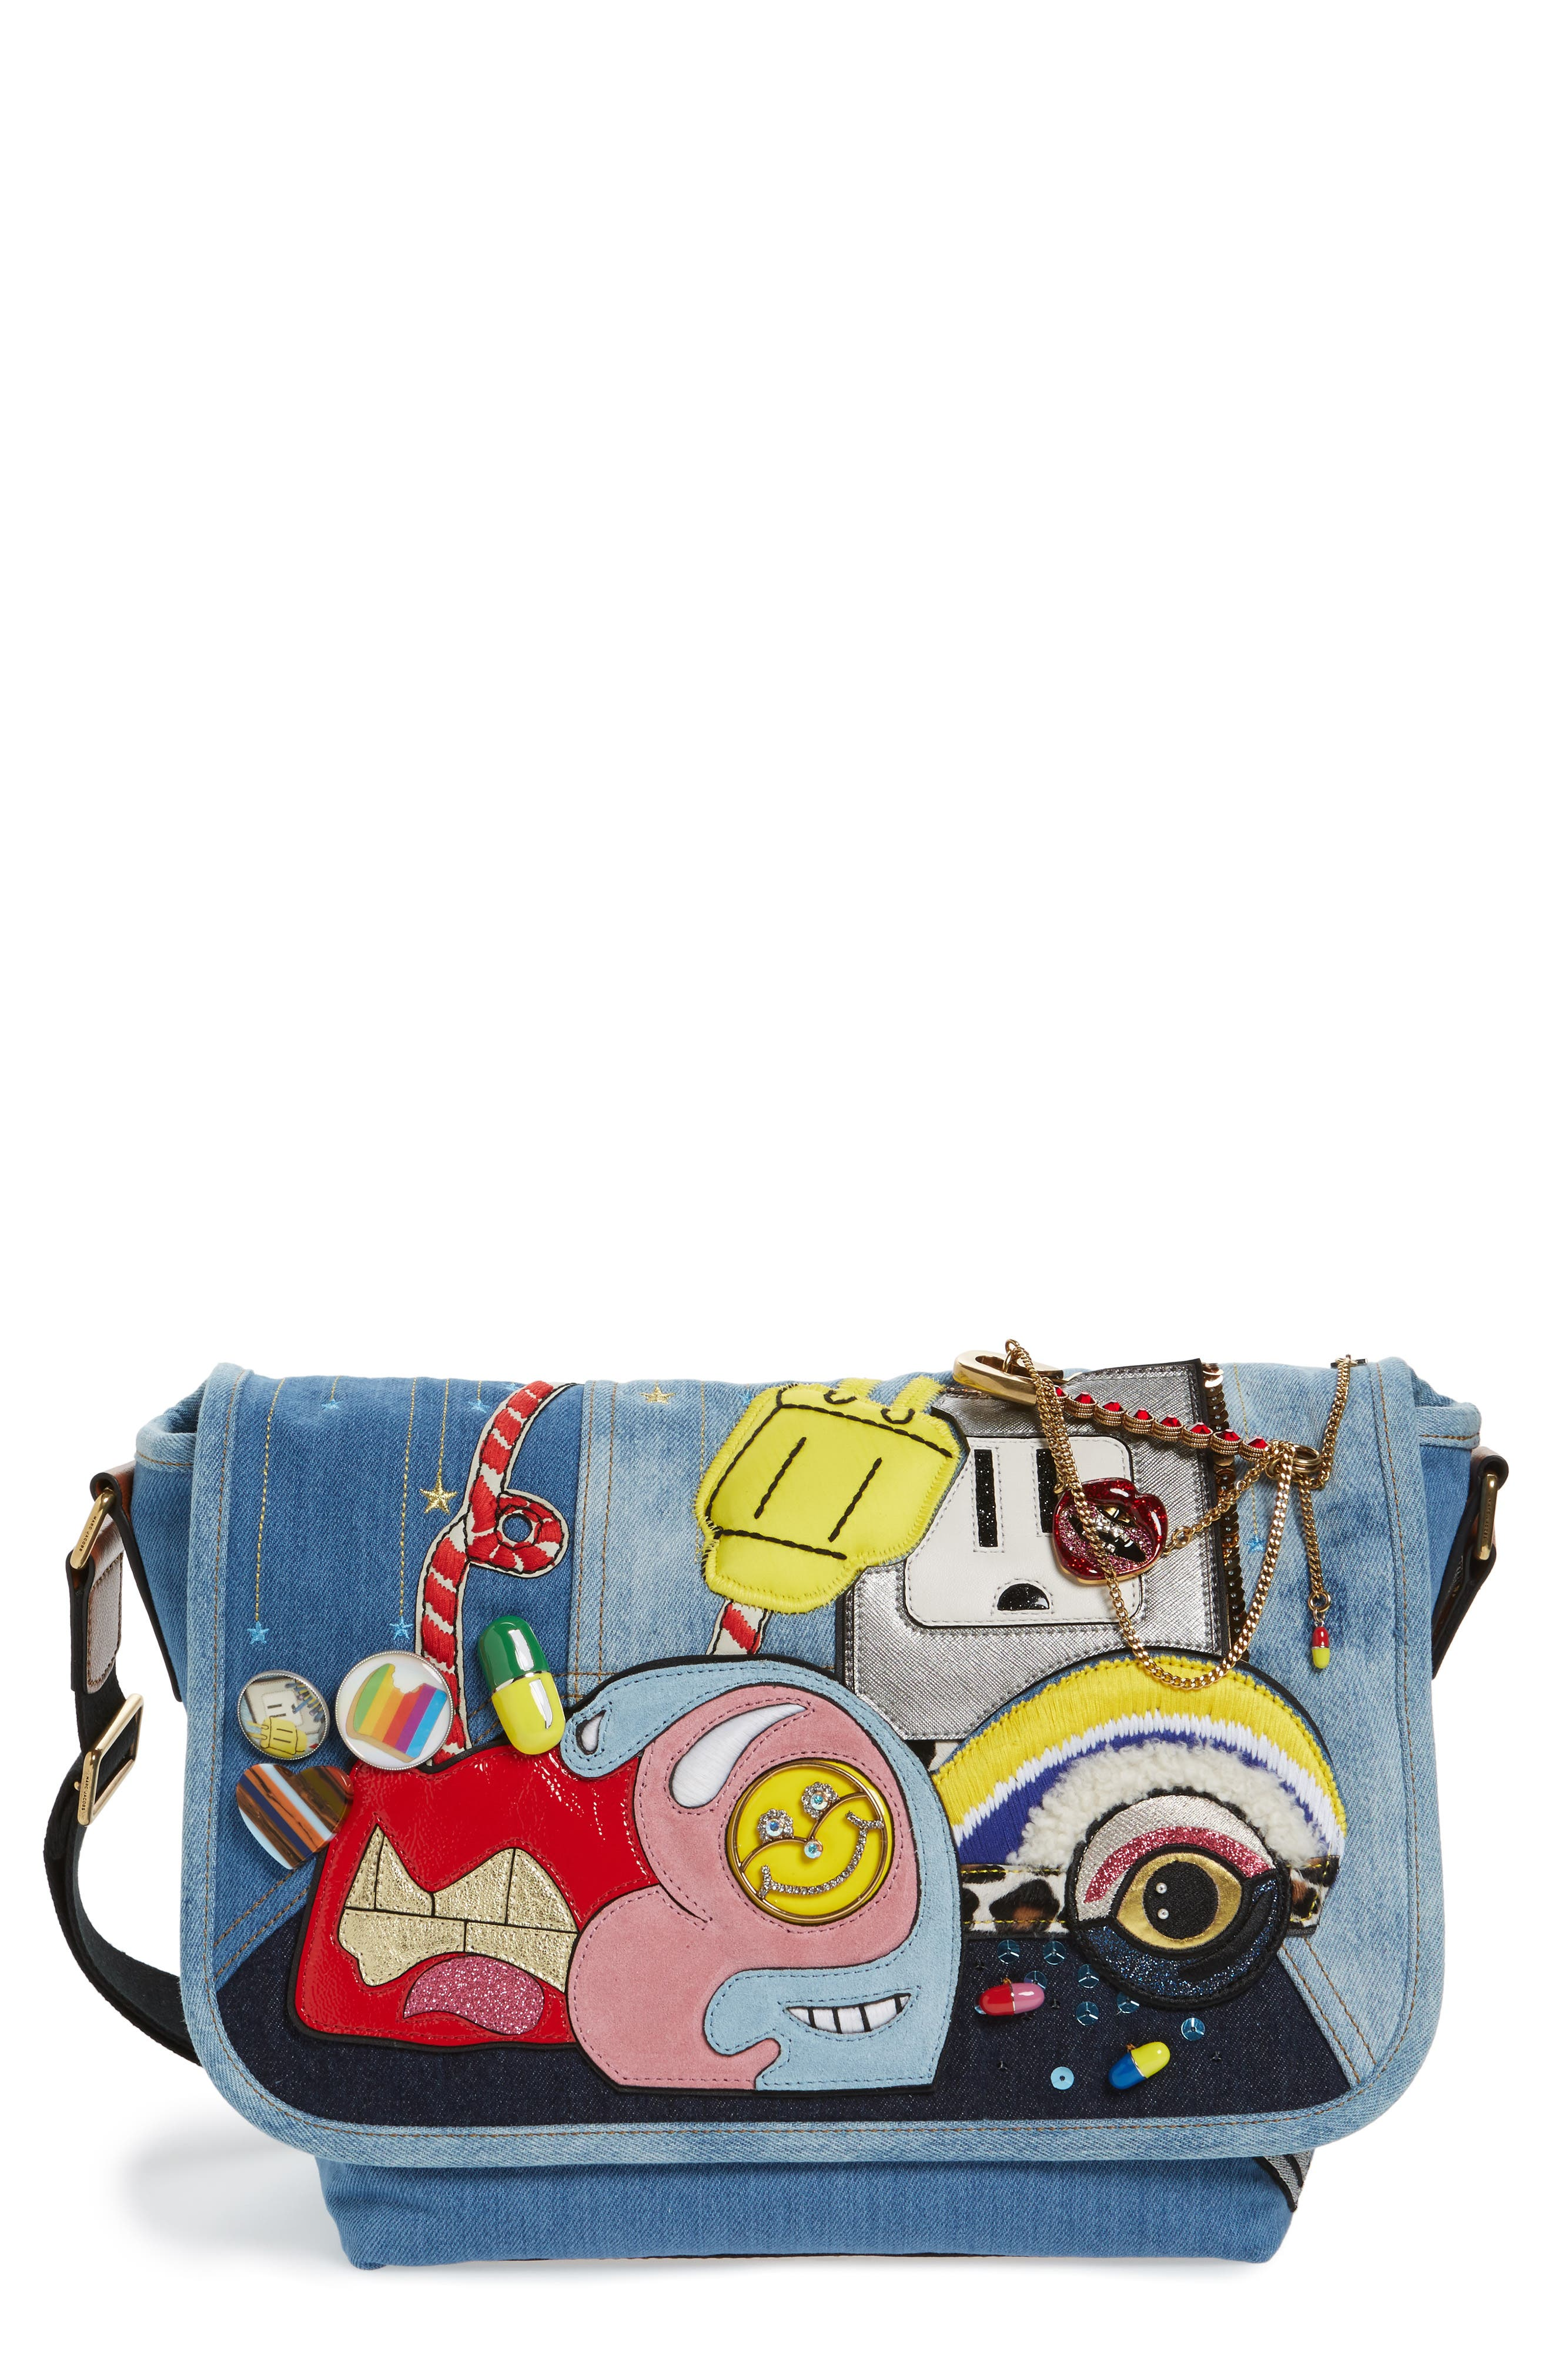 Main Image - MARC JACOBS Denim Crossbody Bag